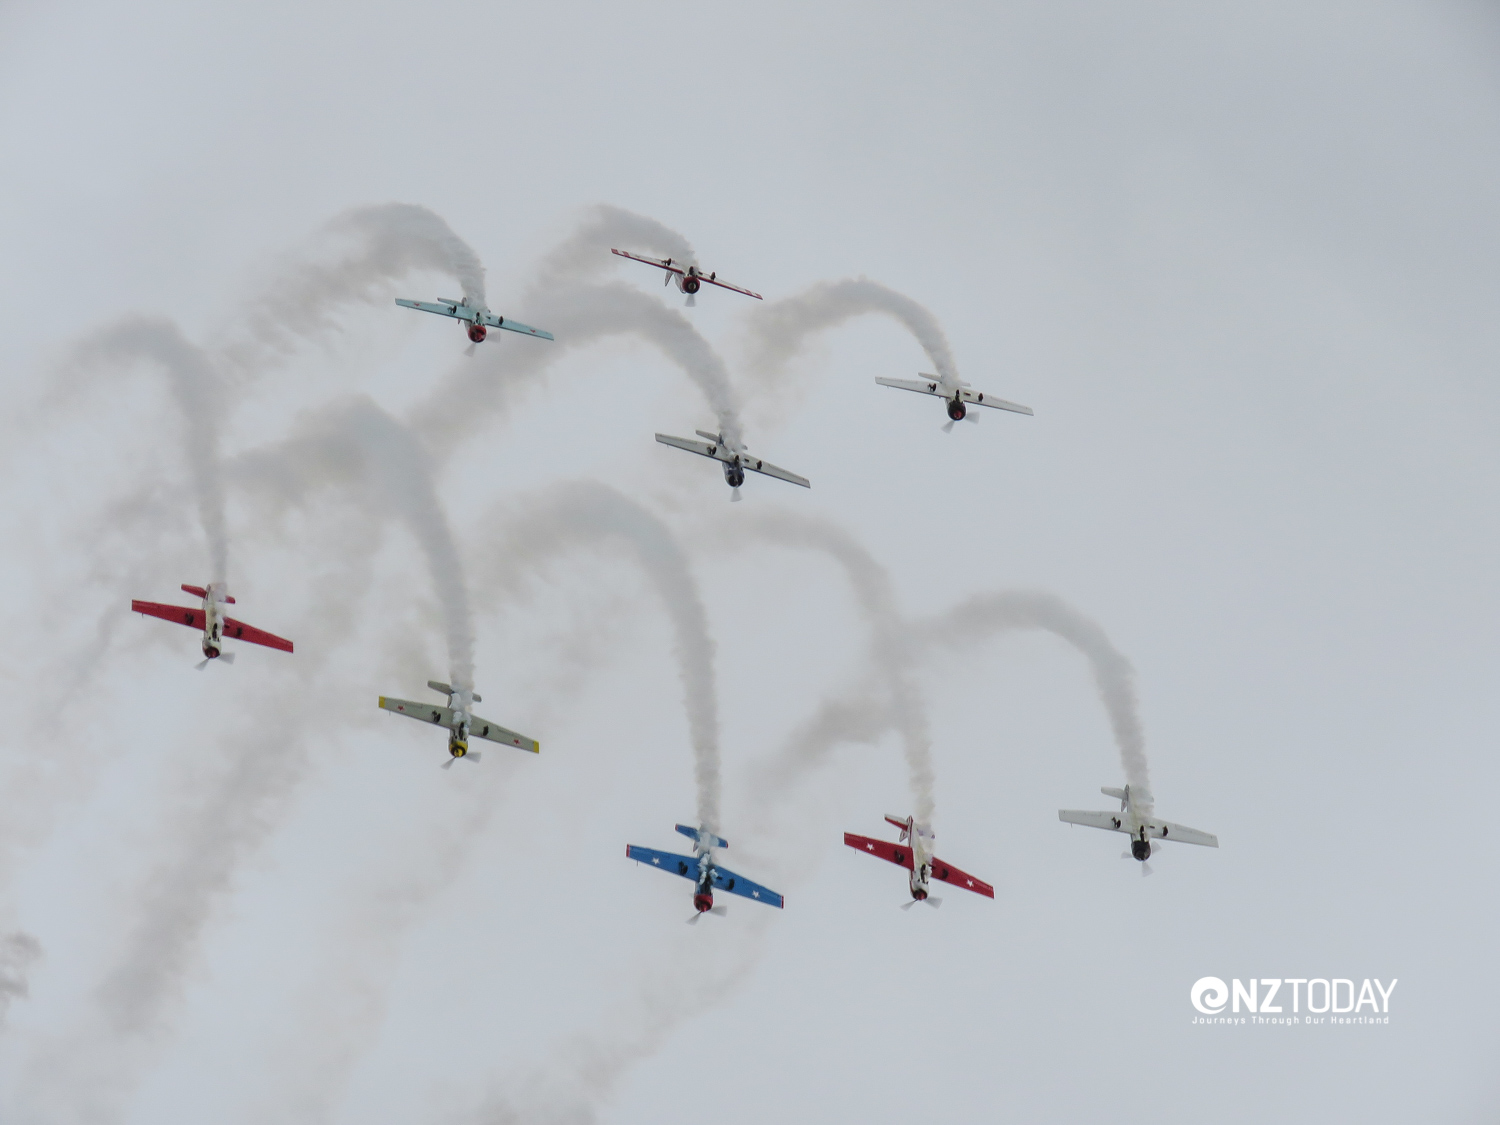 Practice makes perfect formation flying.